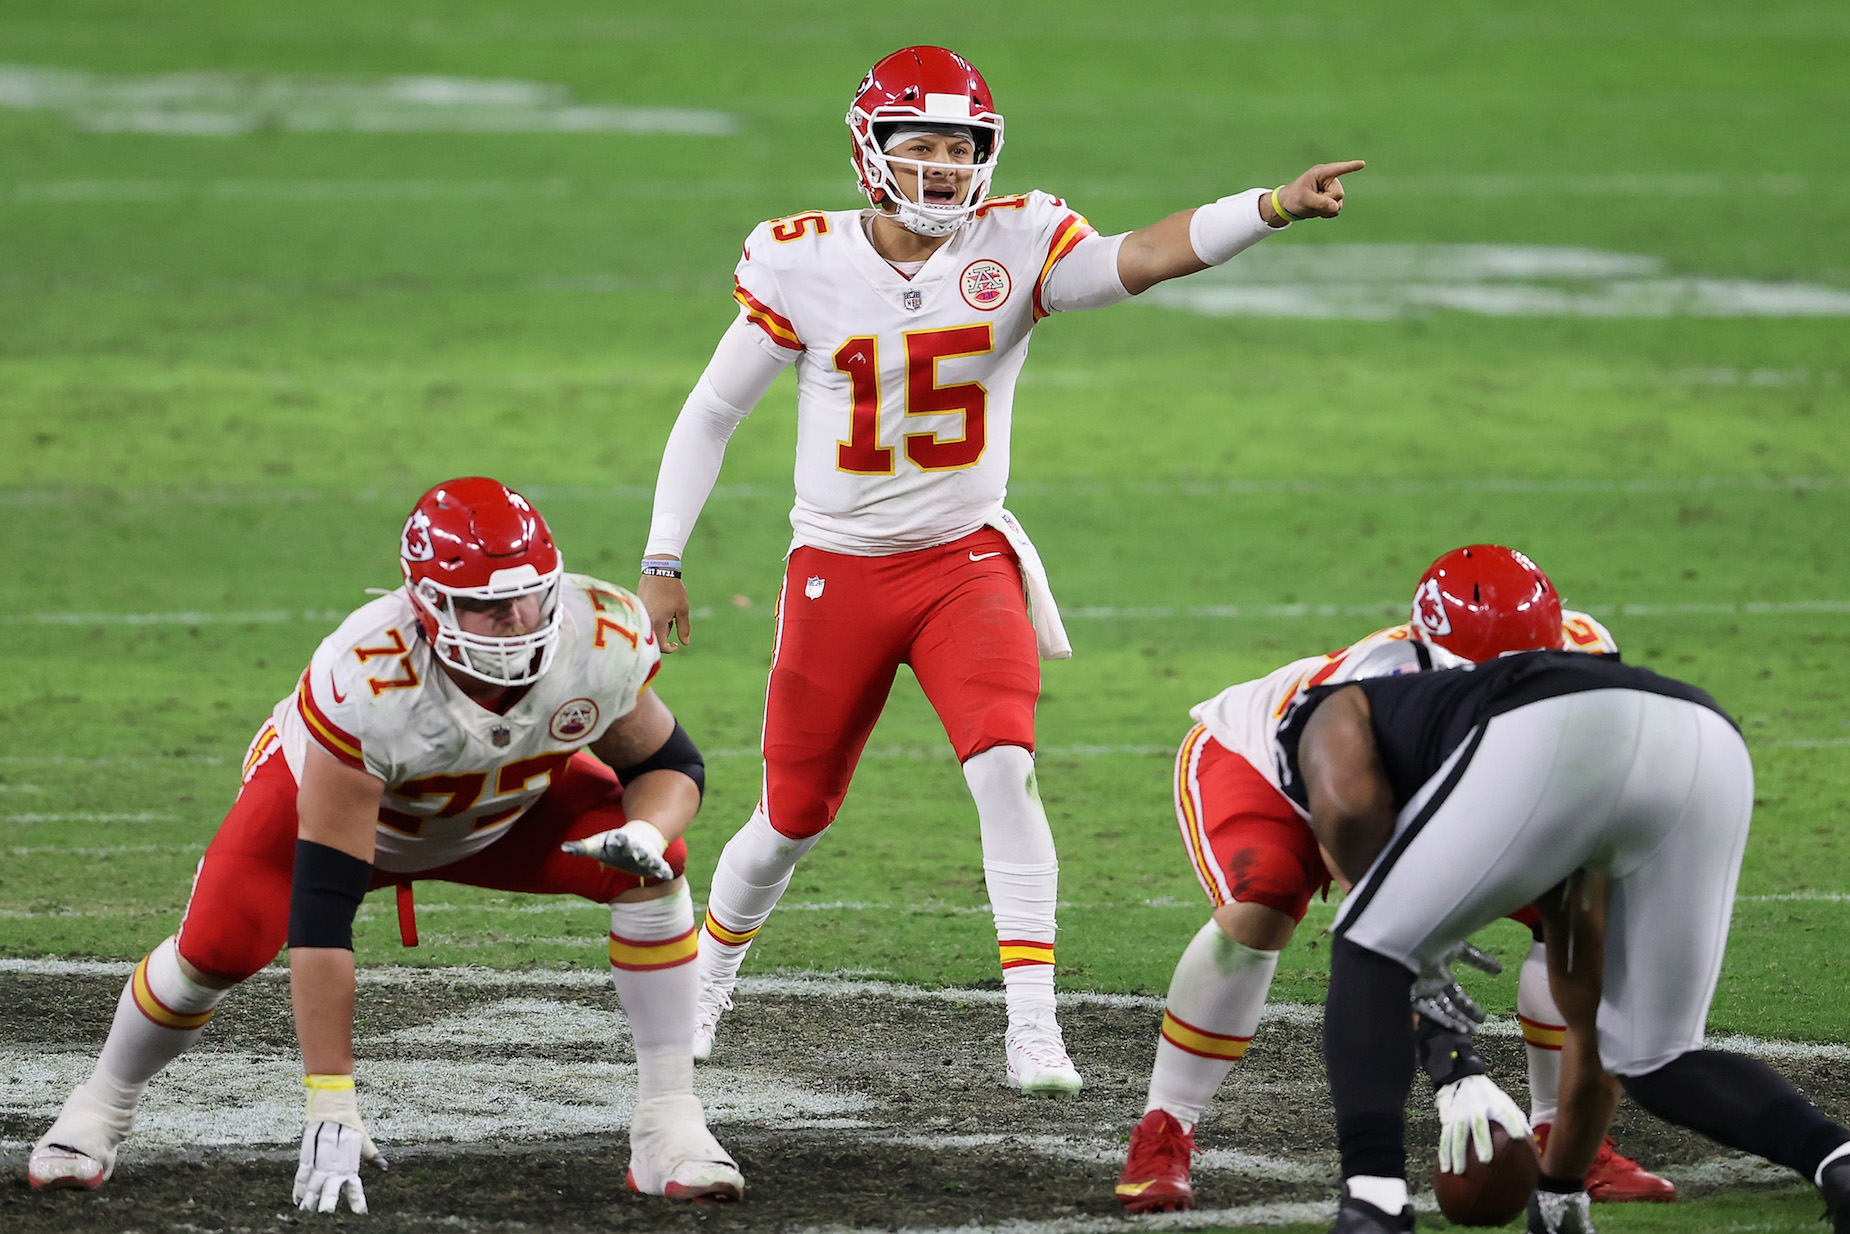 Kansas City Chiefs quarterback Patrick Mahomes received a high compliment from a rival head coach.